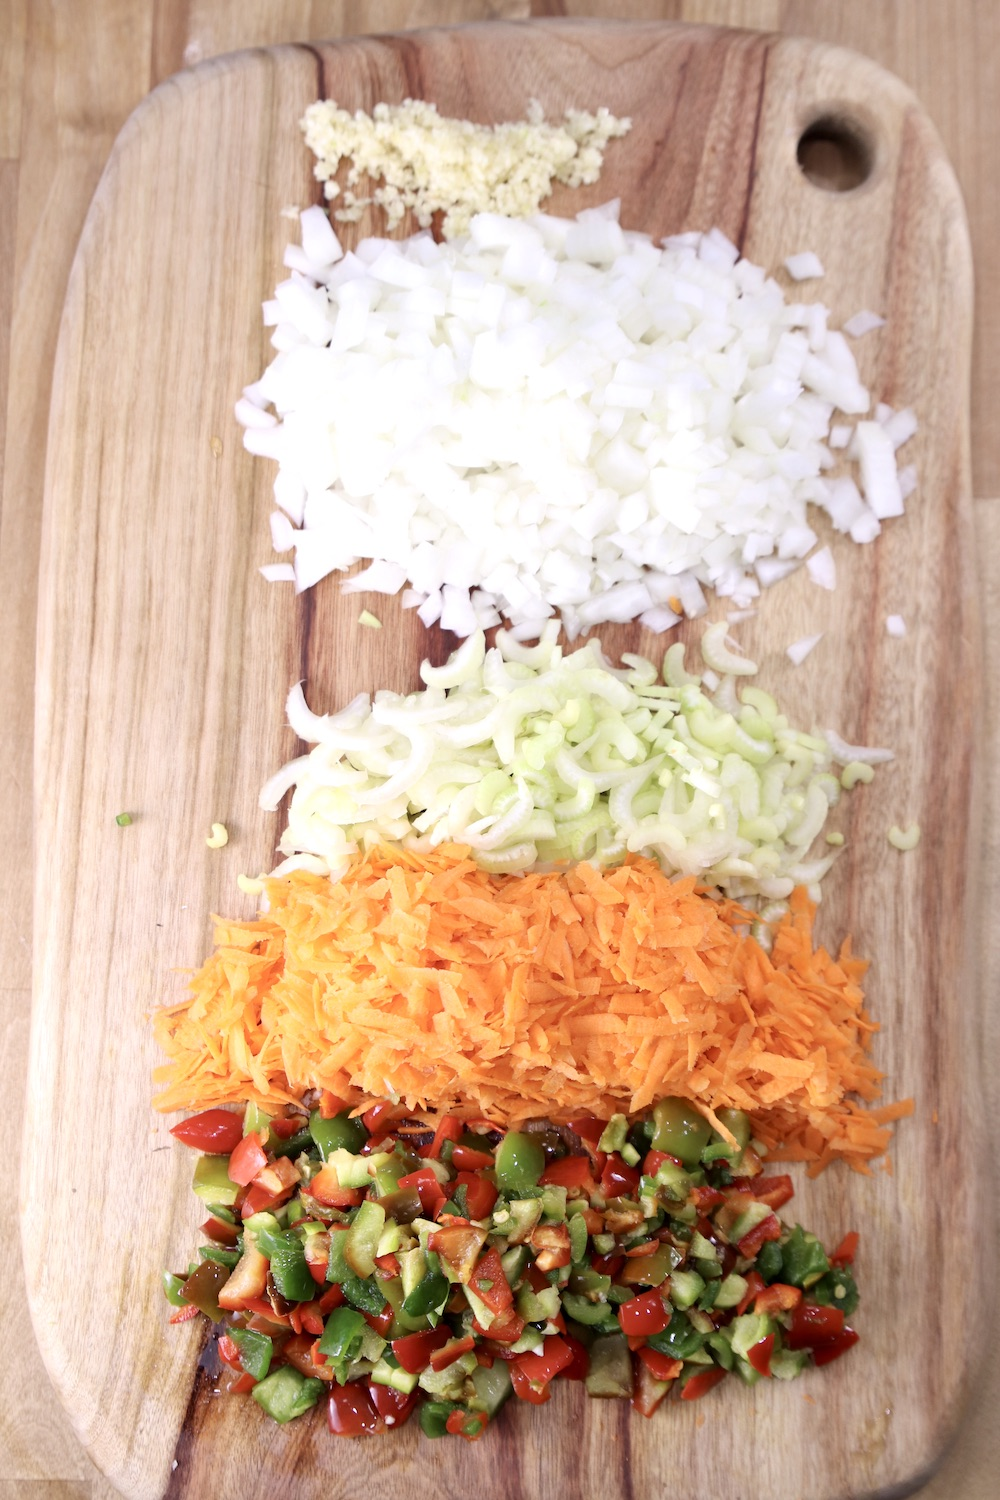 cutting board with garlic, onions, celery, carrots, diced peppers